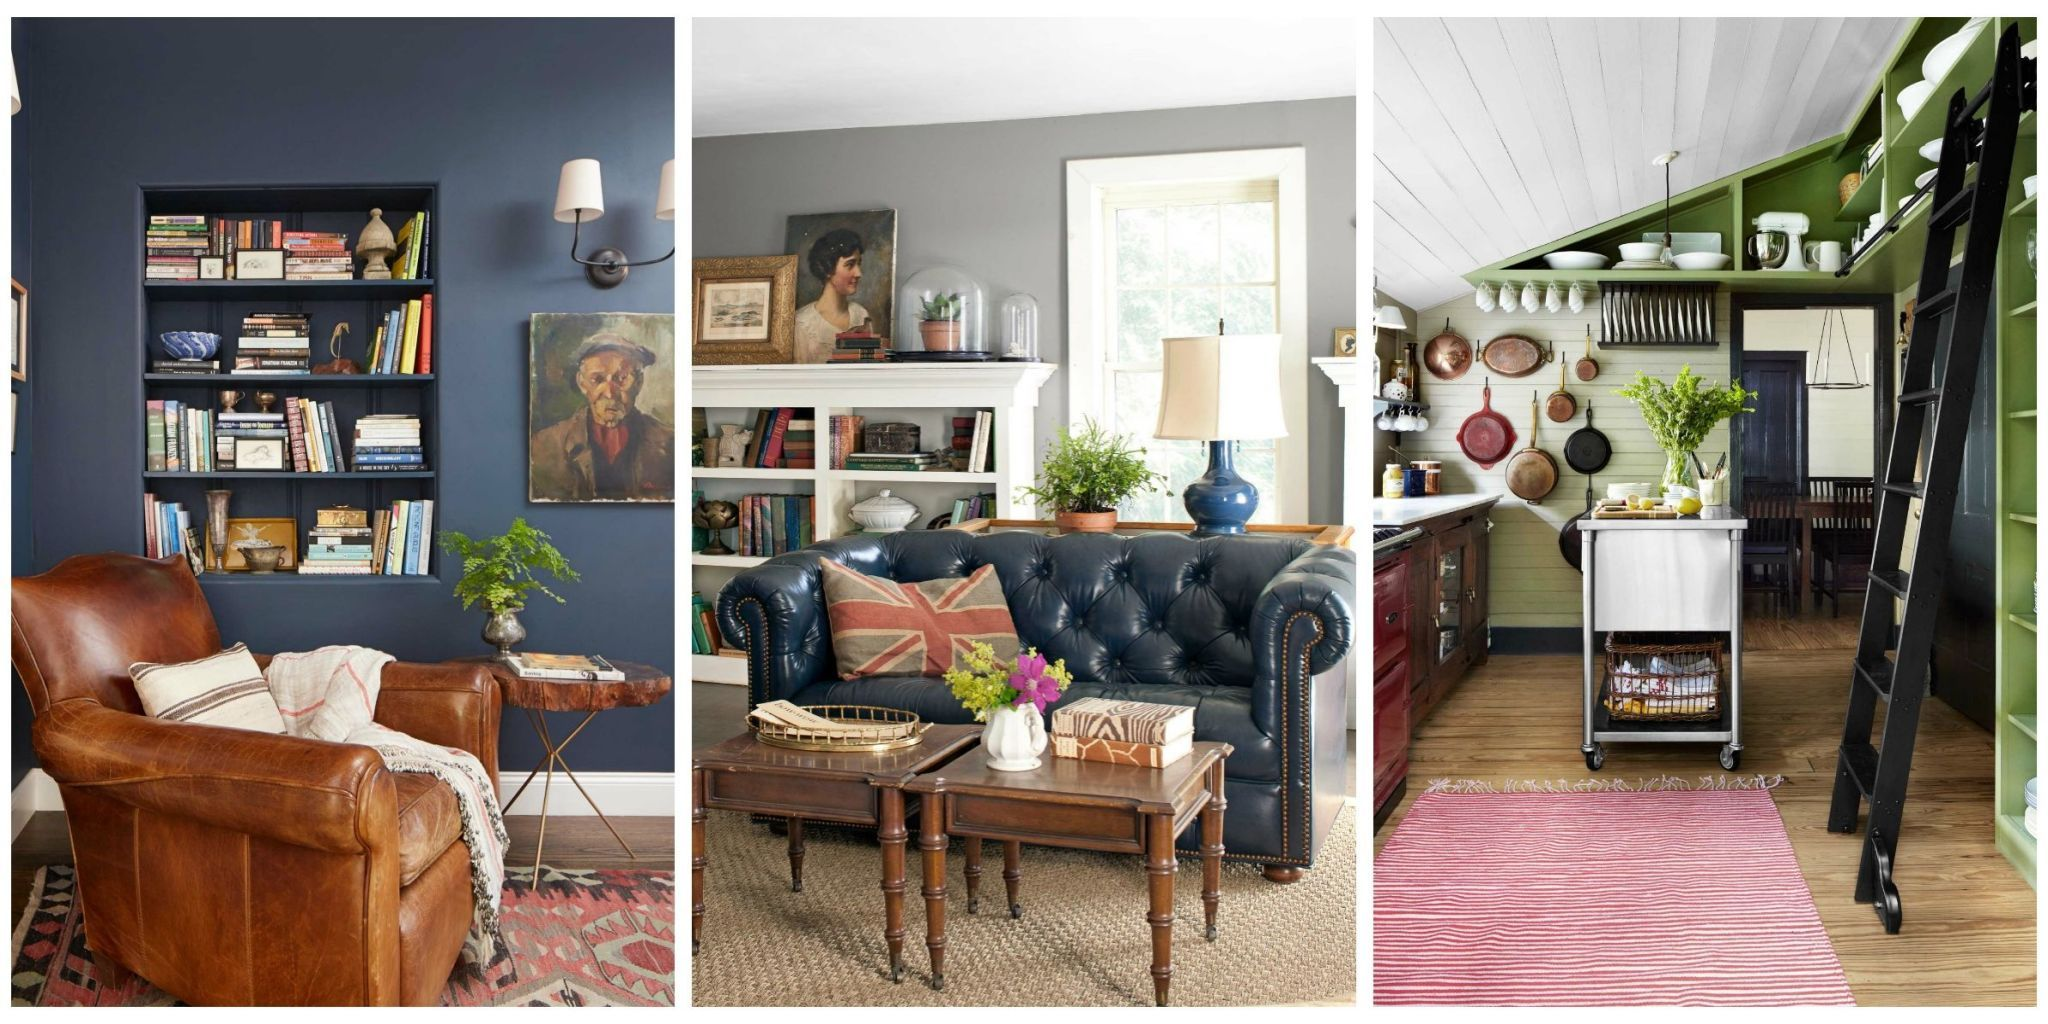 23 Warm Paint Colors For A Cozy Home